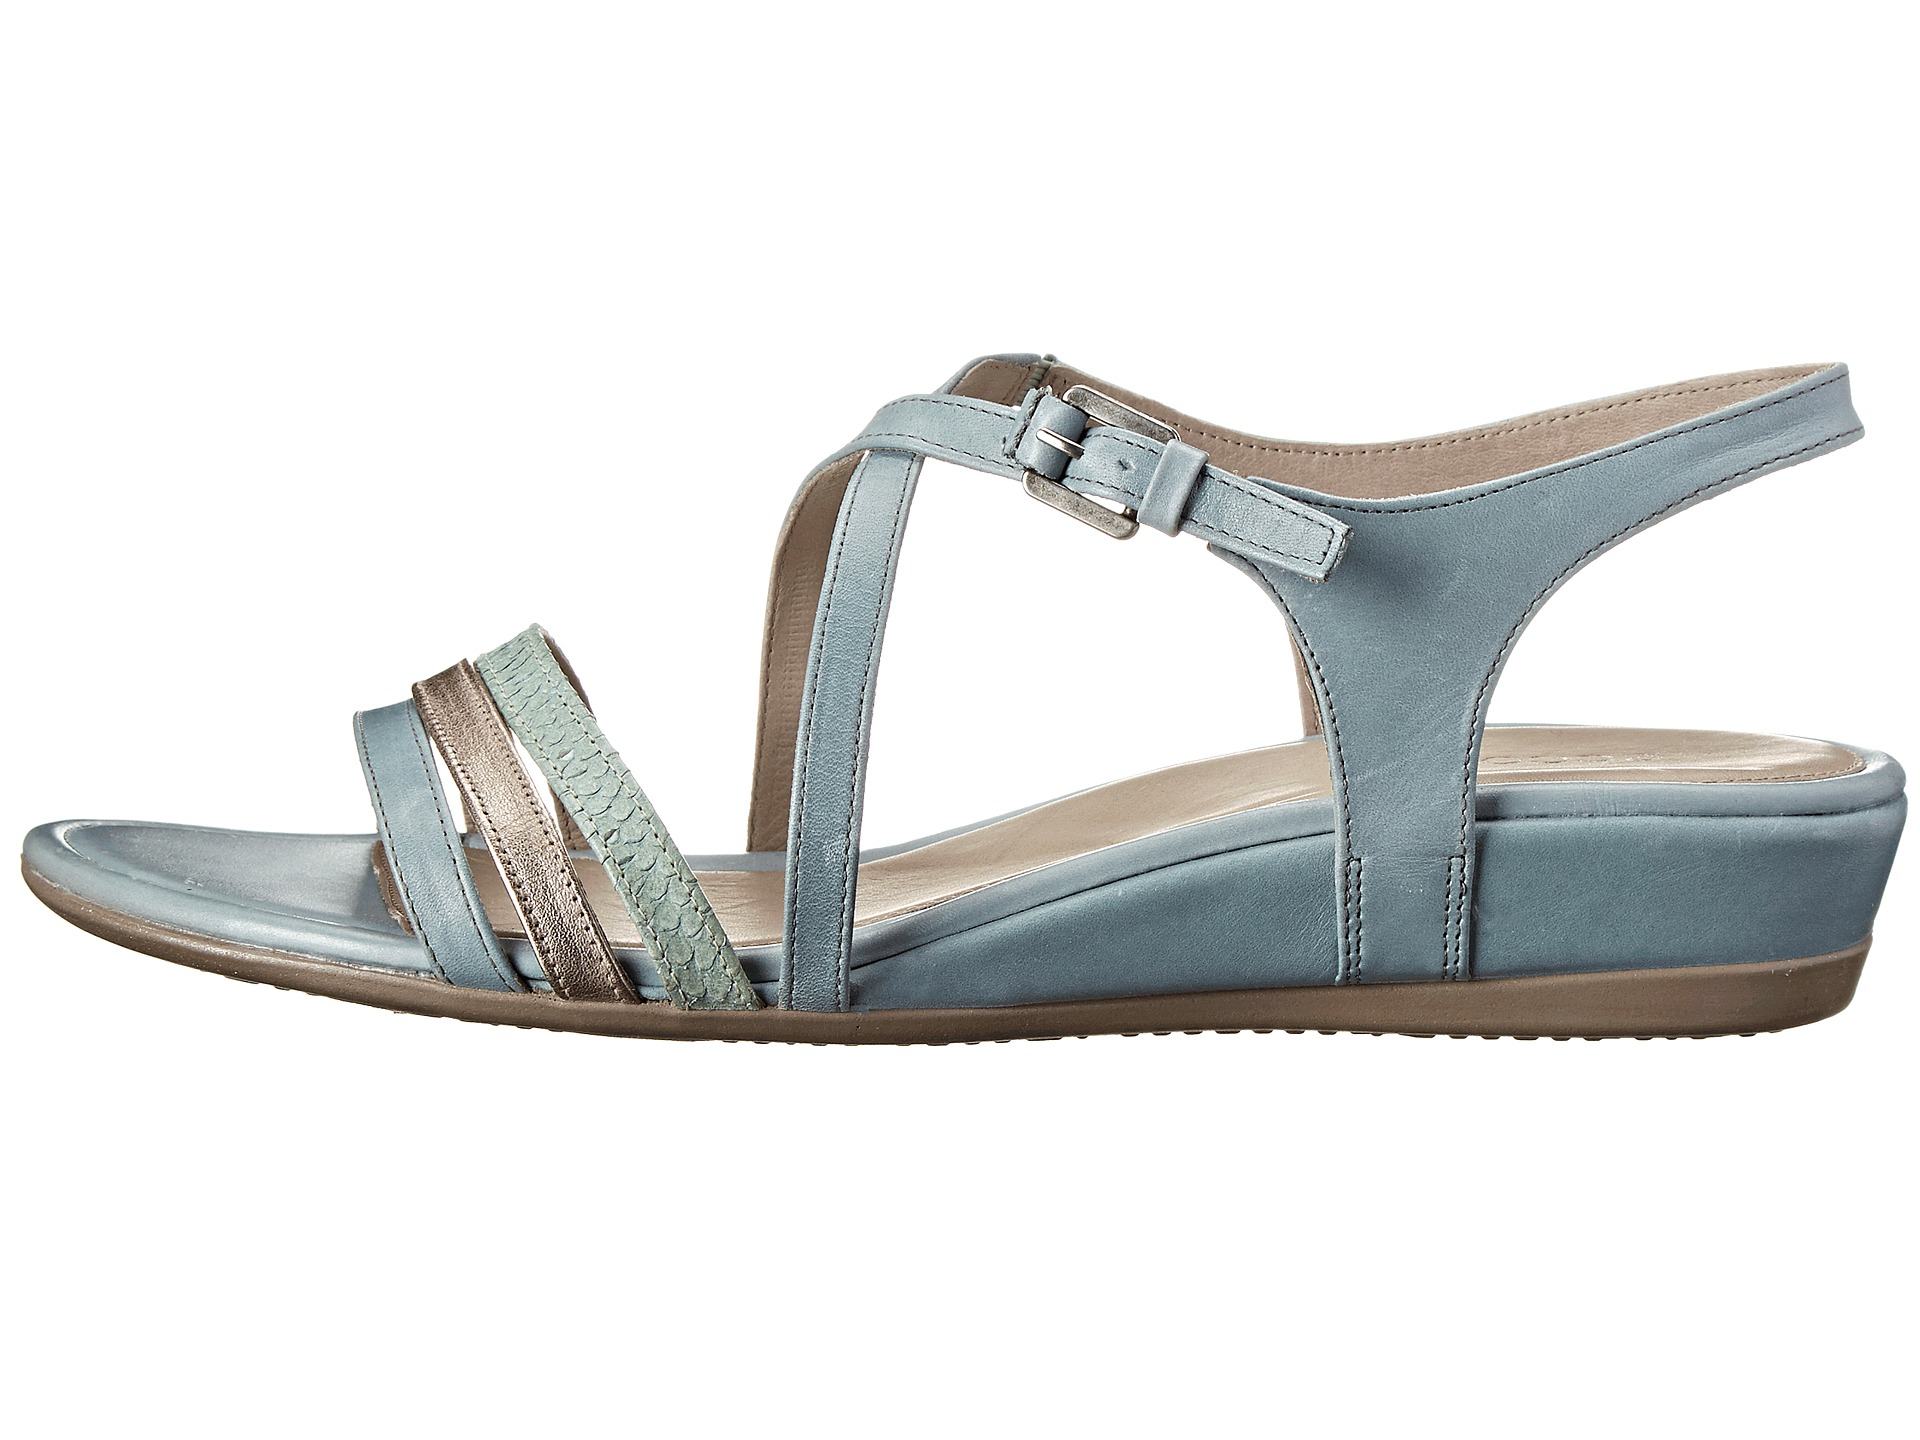 Lyst Ecco Touch 25 Strap Sandal in Blue